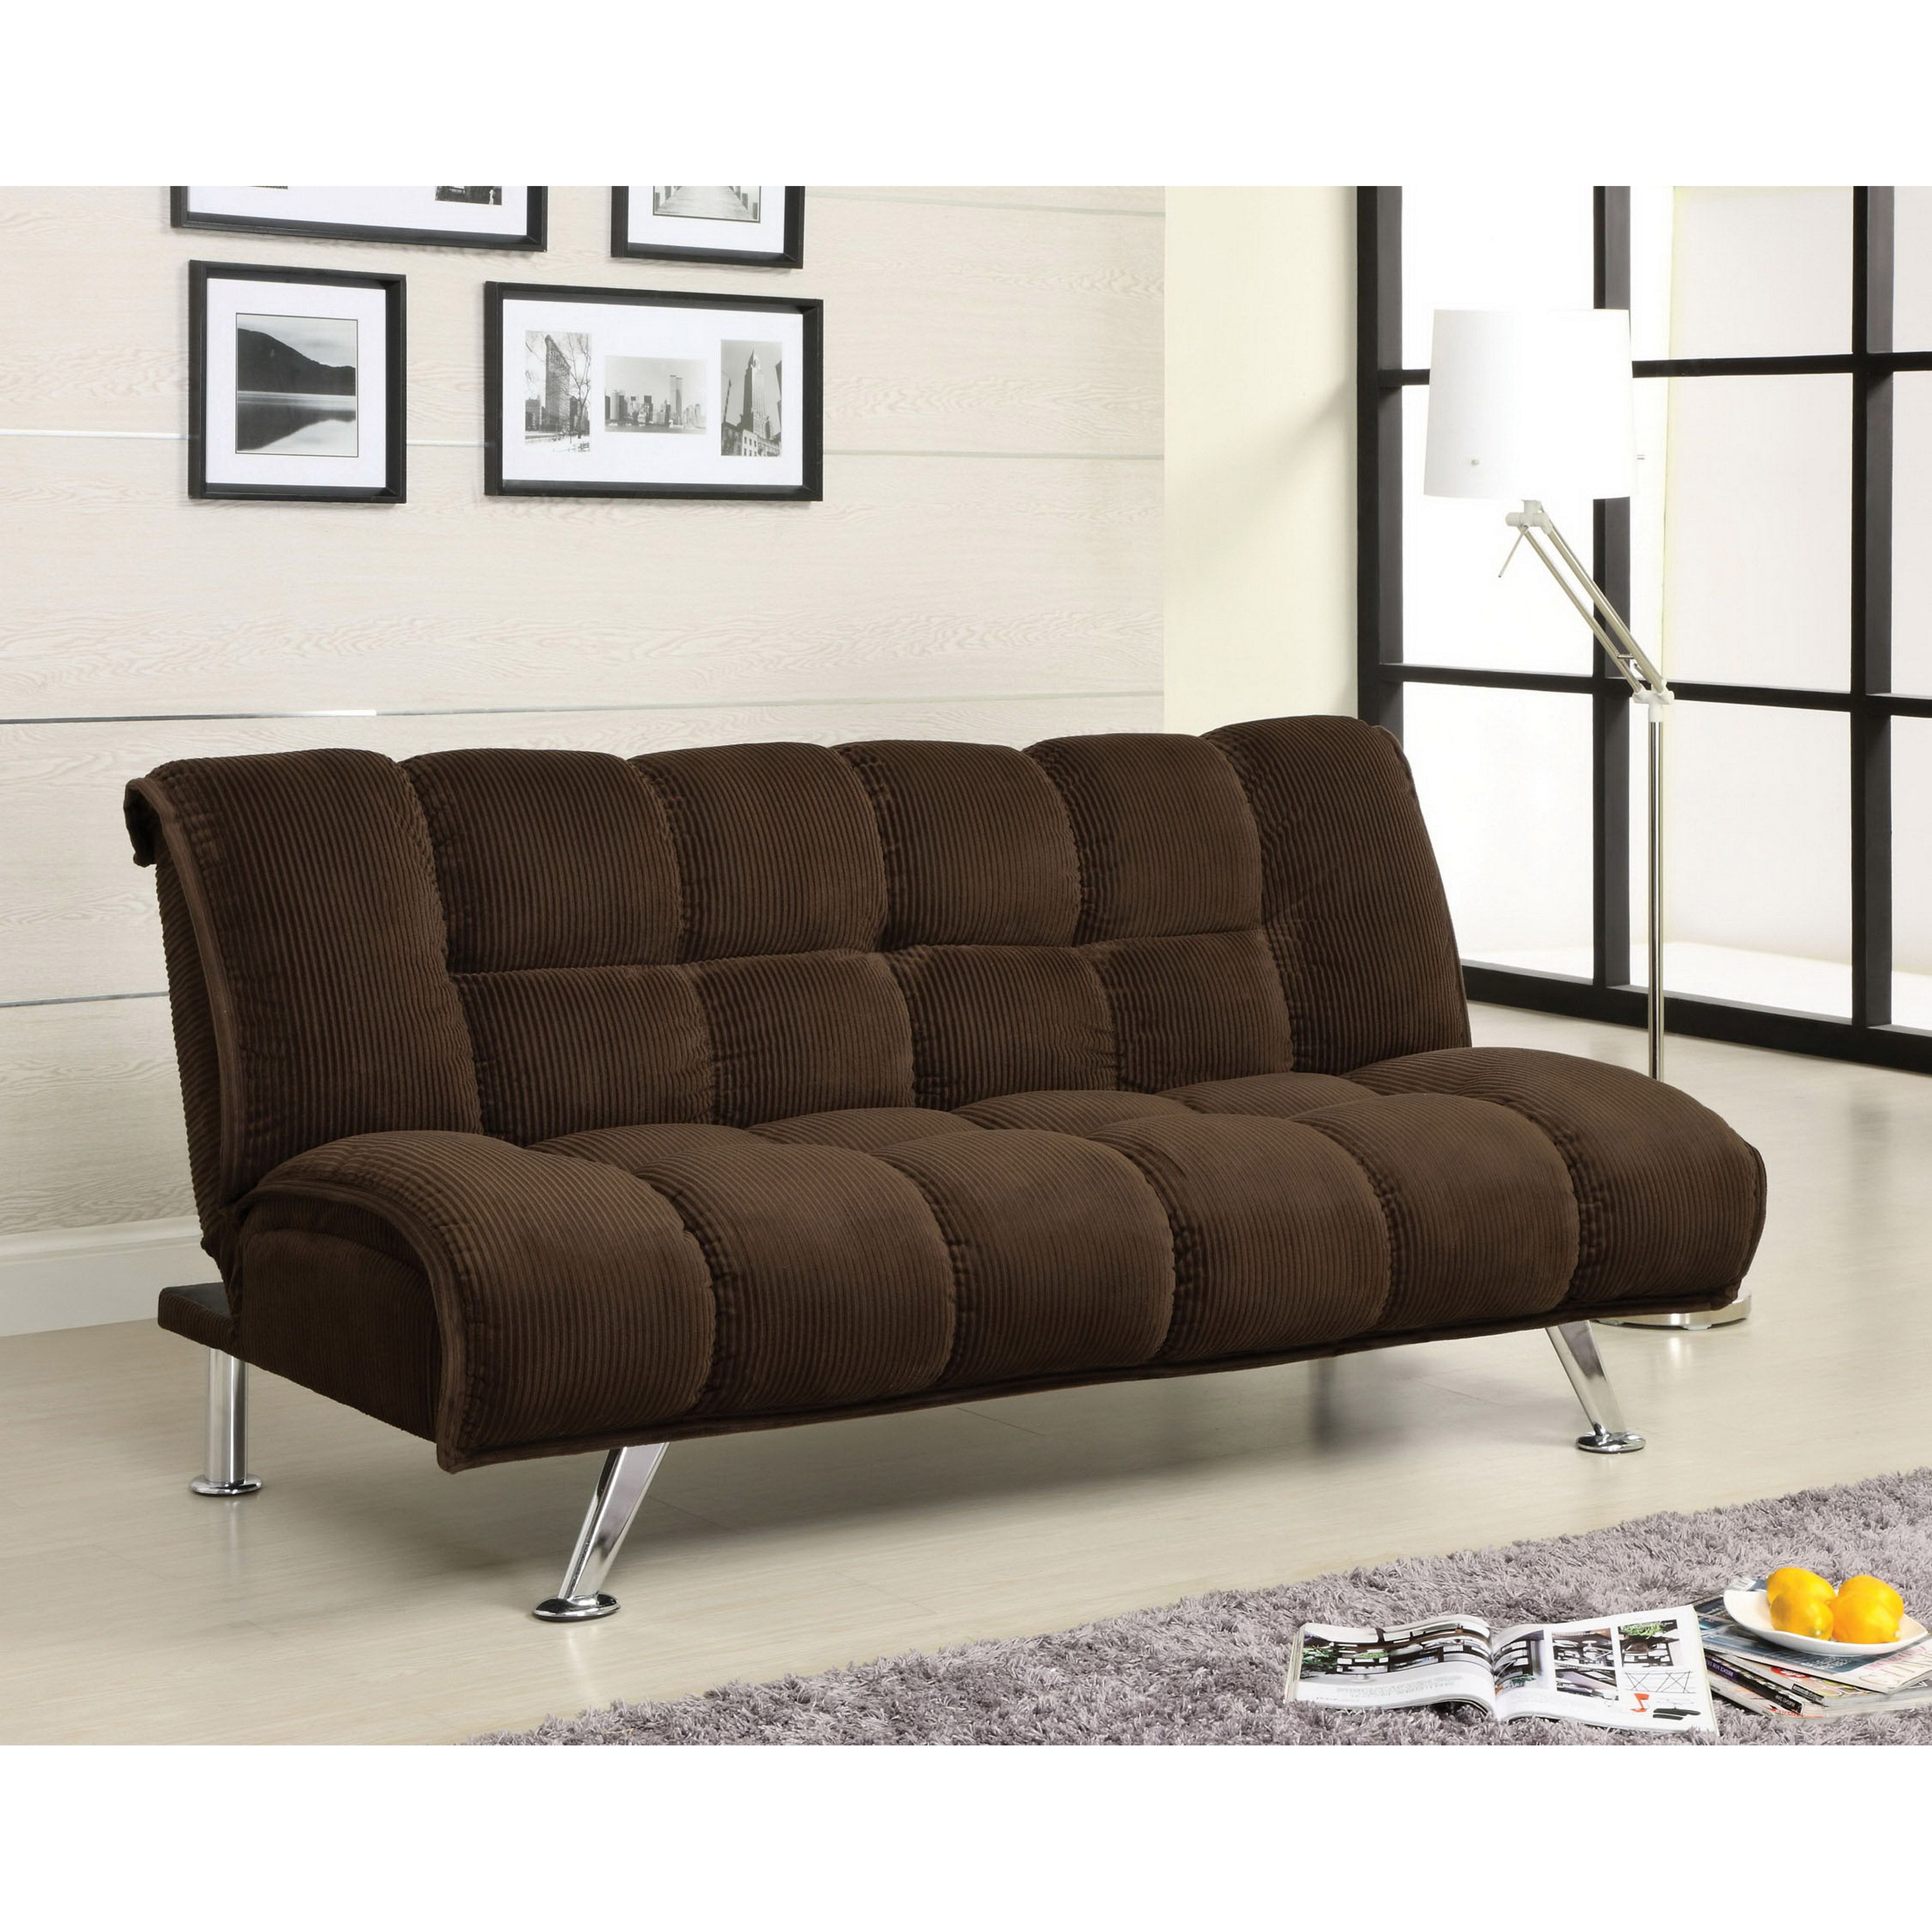 outlet clearance bobs large online one fashion discount size cheap australia of furniture deals shots full stores warehouse